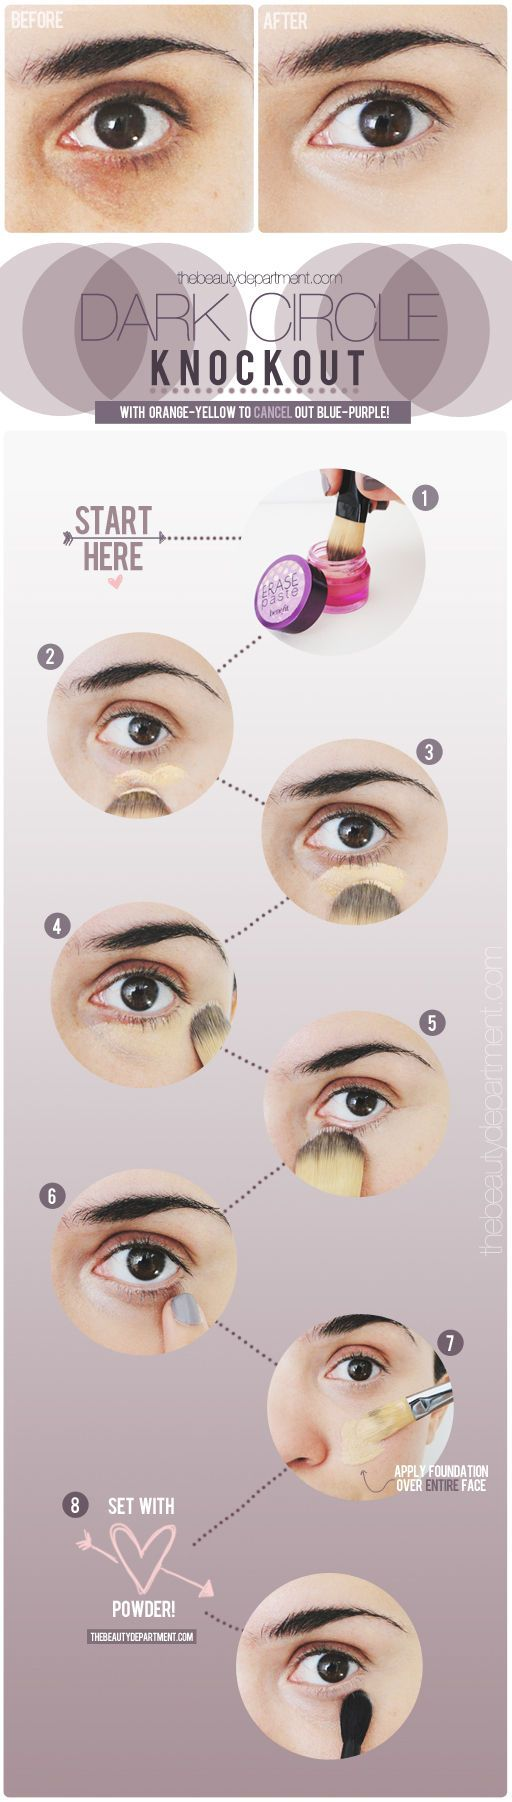 Makeup Under-Eye Correction ........ Here is a tutorial to  cover dark circles, tackling the darkest of dark circles with the help of the color correction.